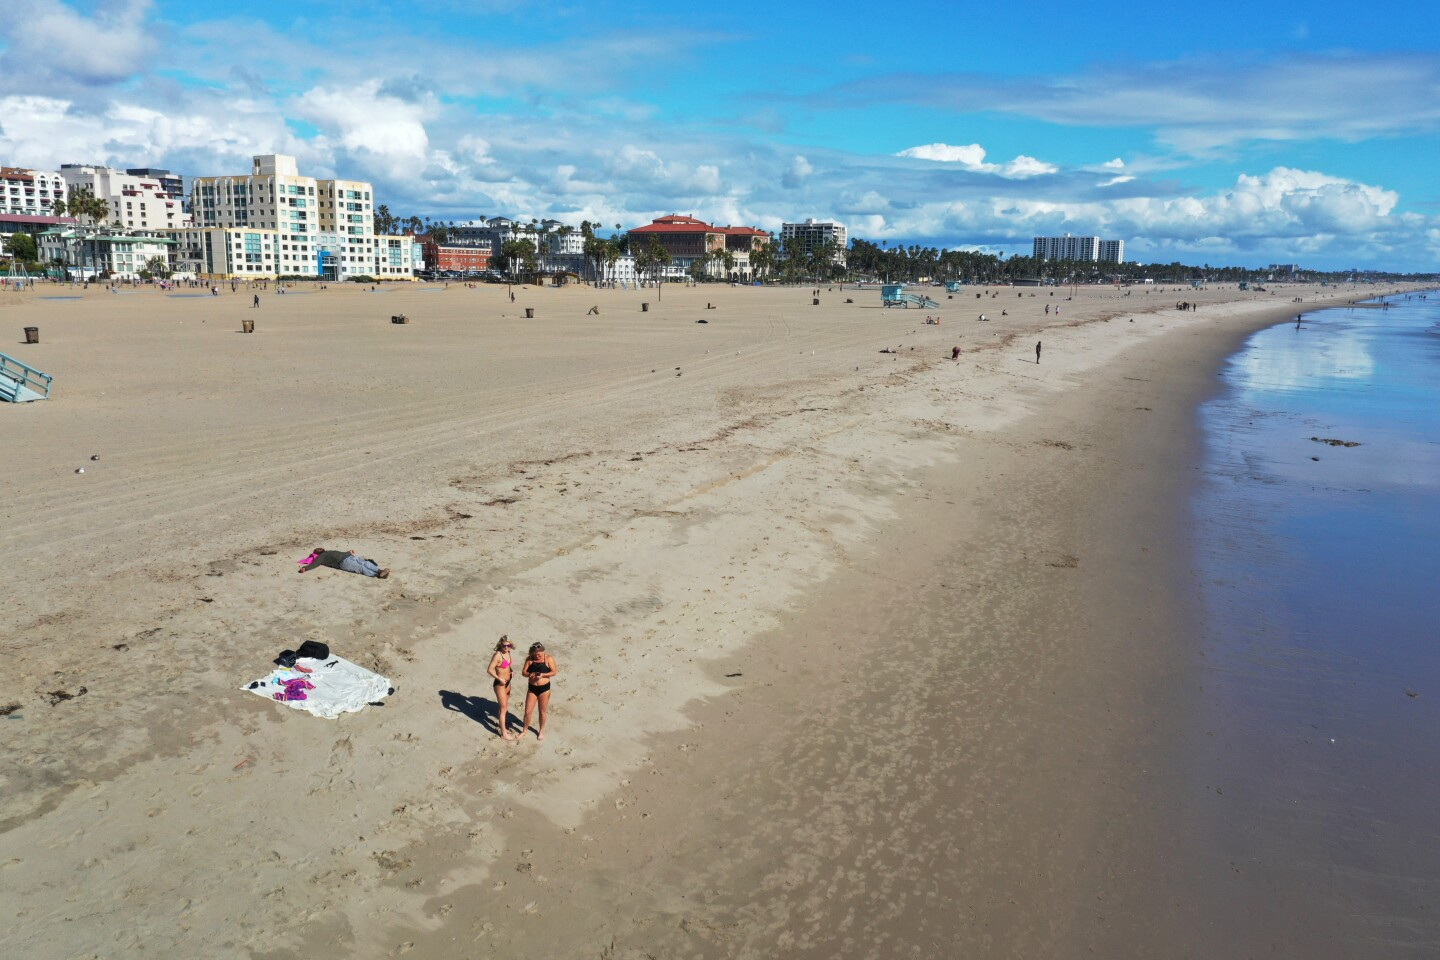 The City of Santa Monica closed the Santa Monica Pier in an attempt to prevent the further spread of the Coronavirus. Very few people were on the beach in Santa Monica as the epidemic continues to be a problem.